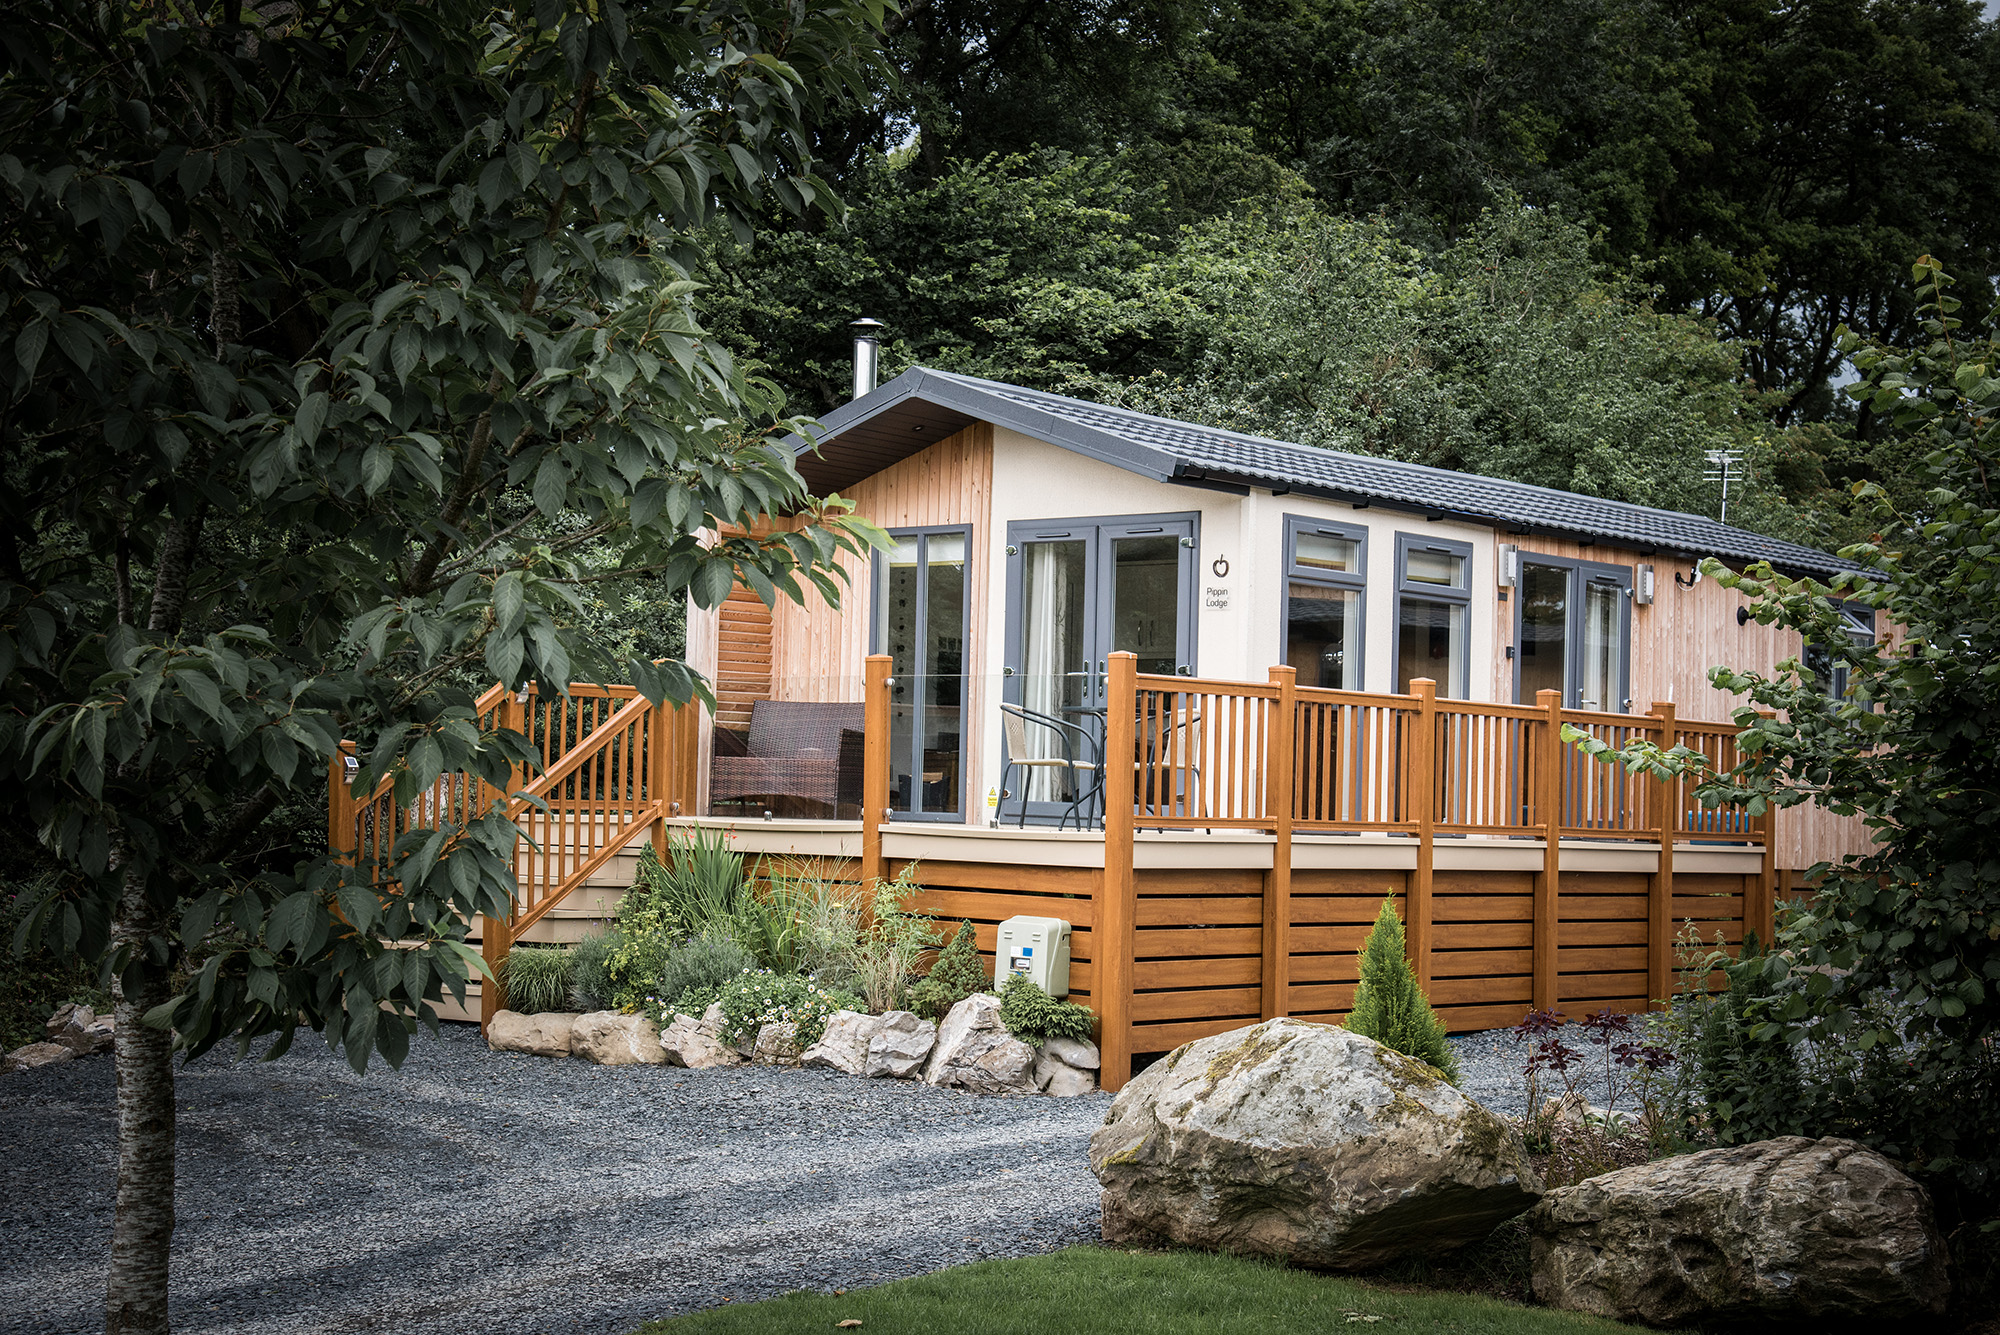 4 Reasons You Should Buy a Home in the Lake District